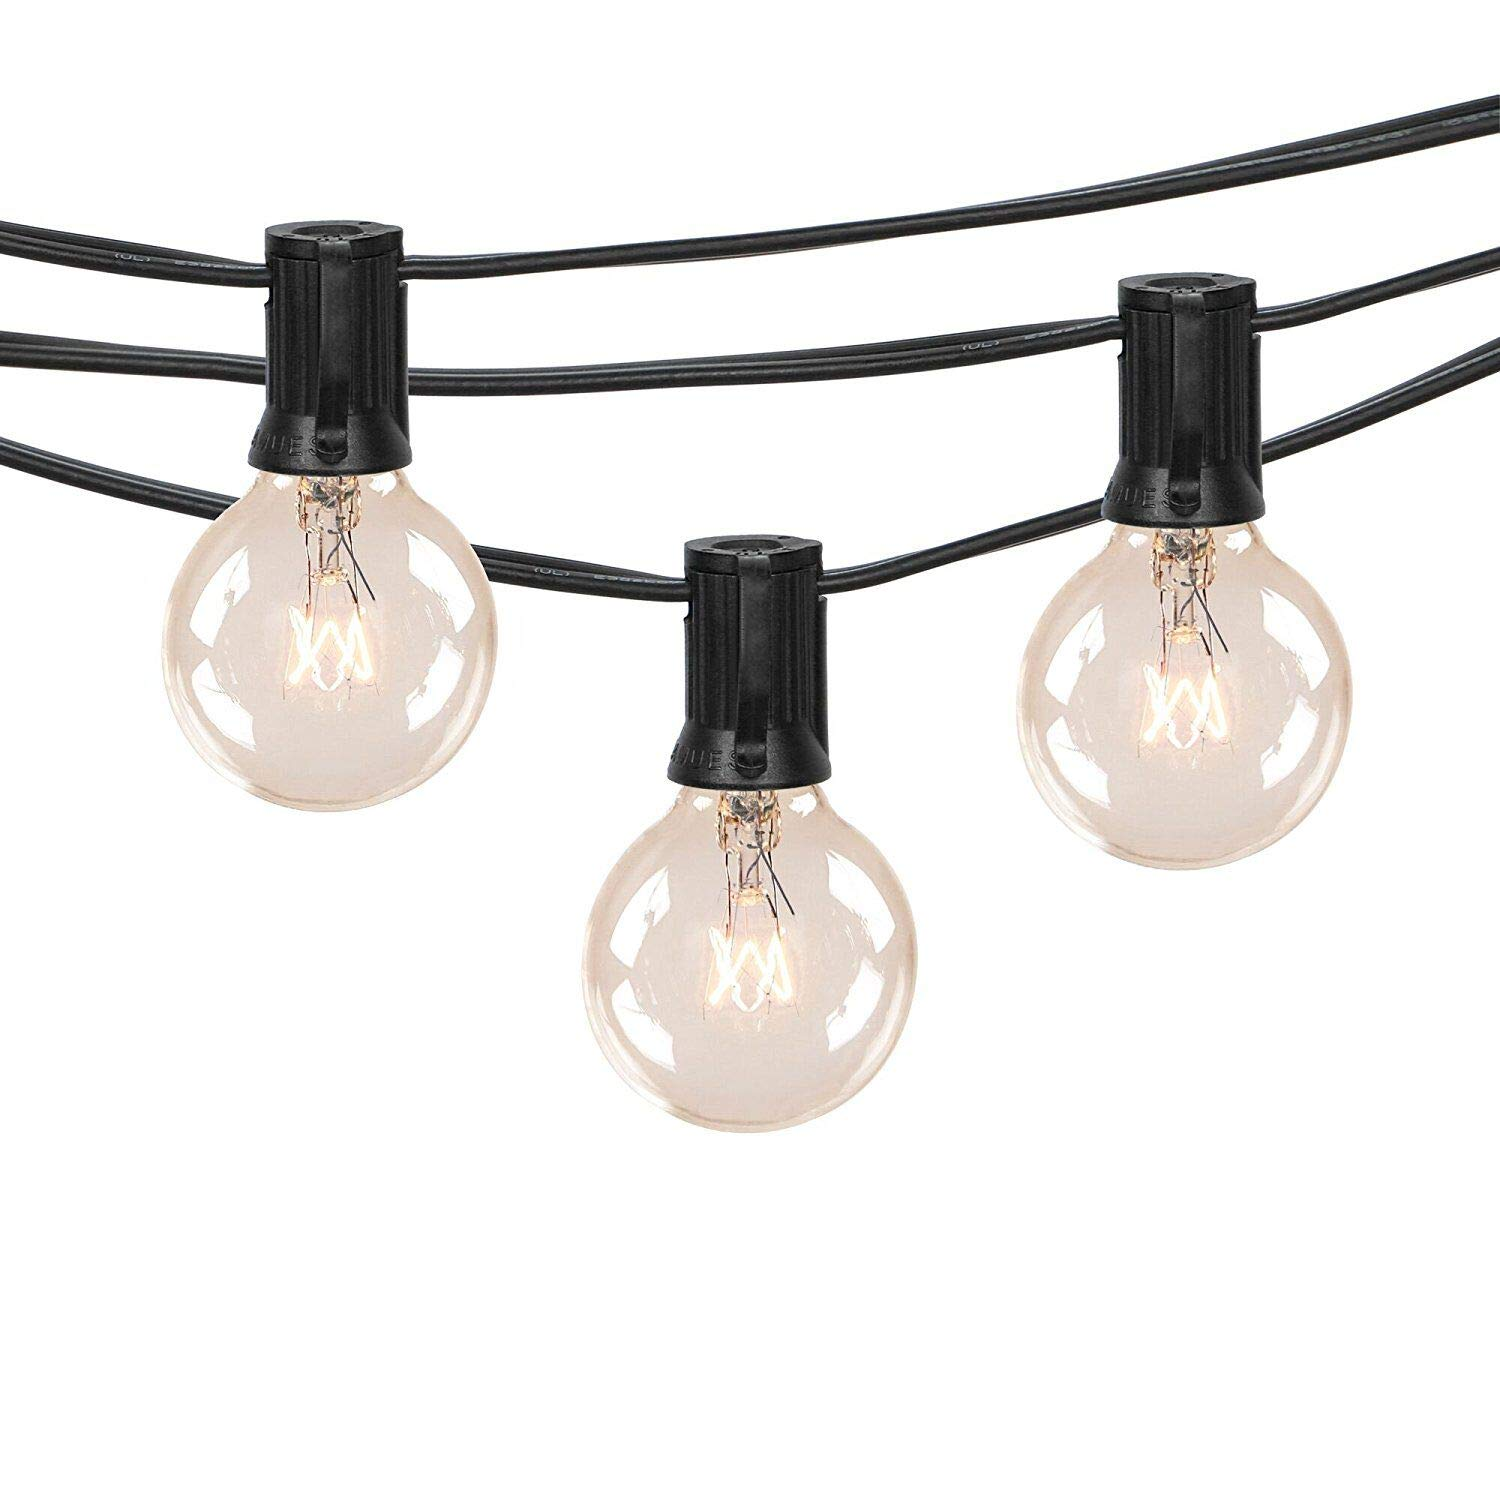 100ft g40 outdoor patio string lights set with clear globe bulbs ul list for outdoor commercial decor old fashion tiki lights for backyard pergola garden